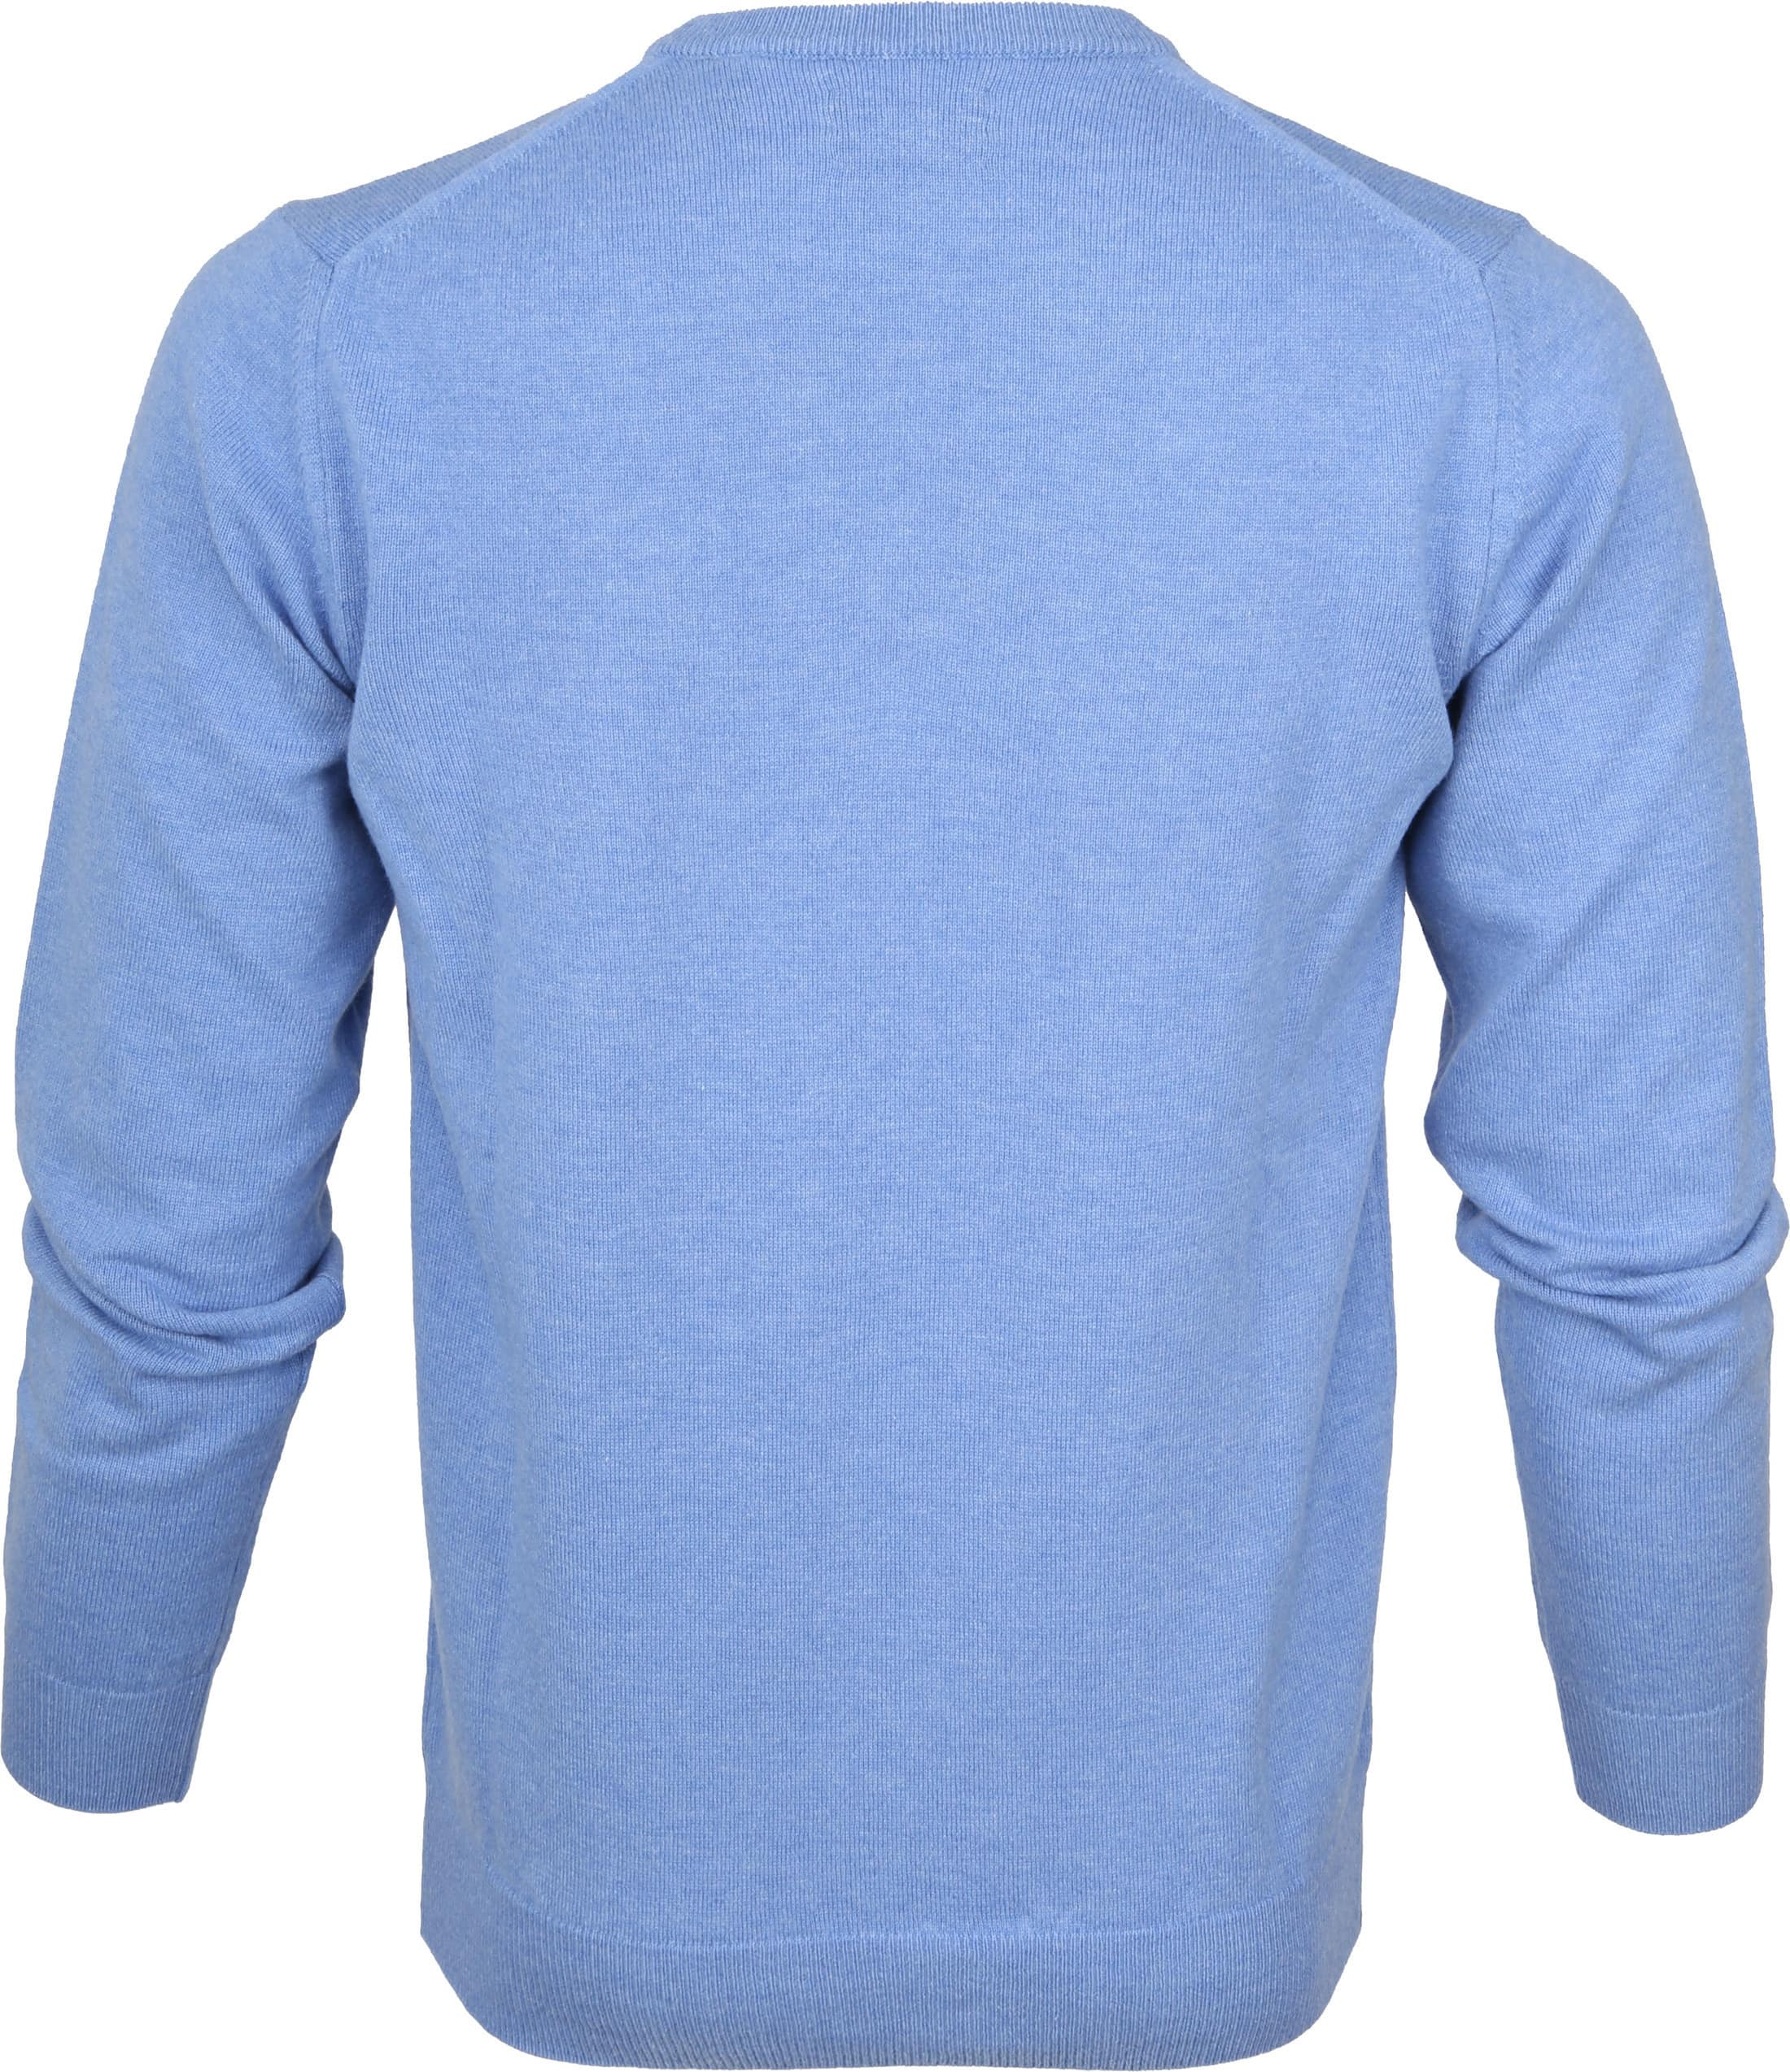 Gant Pullover Lamswol Light Blue foto 2